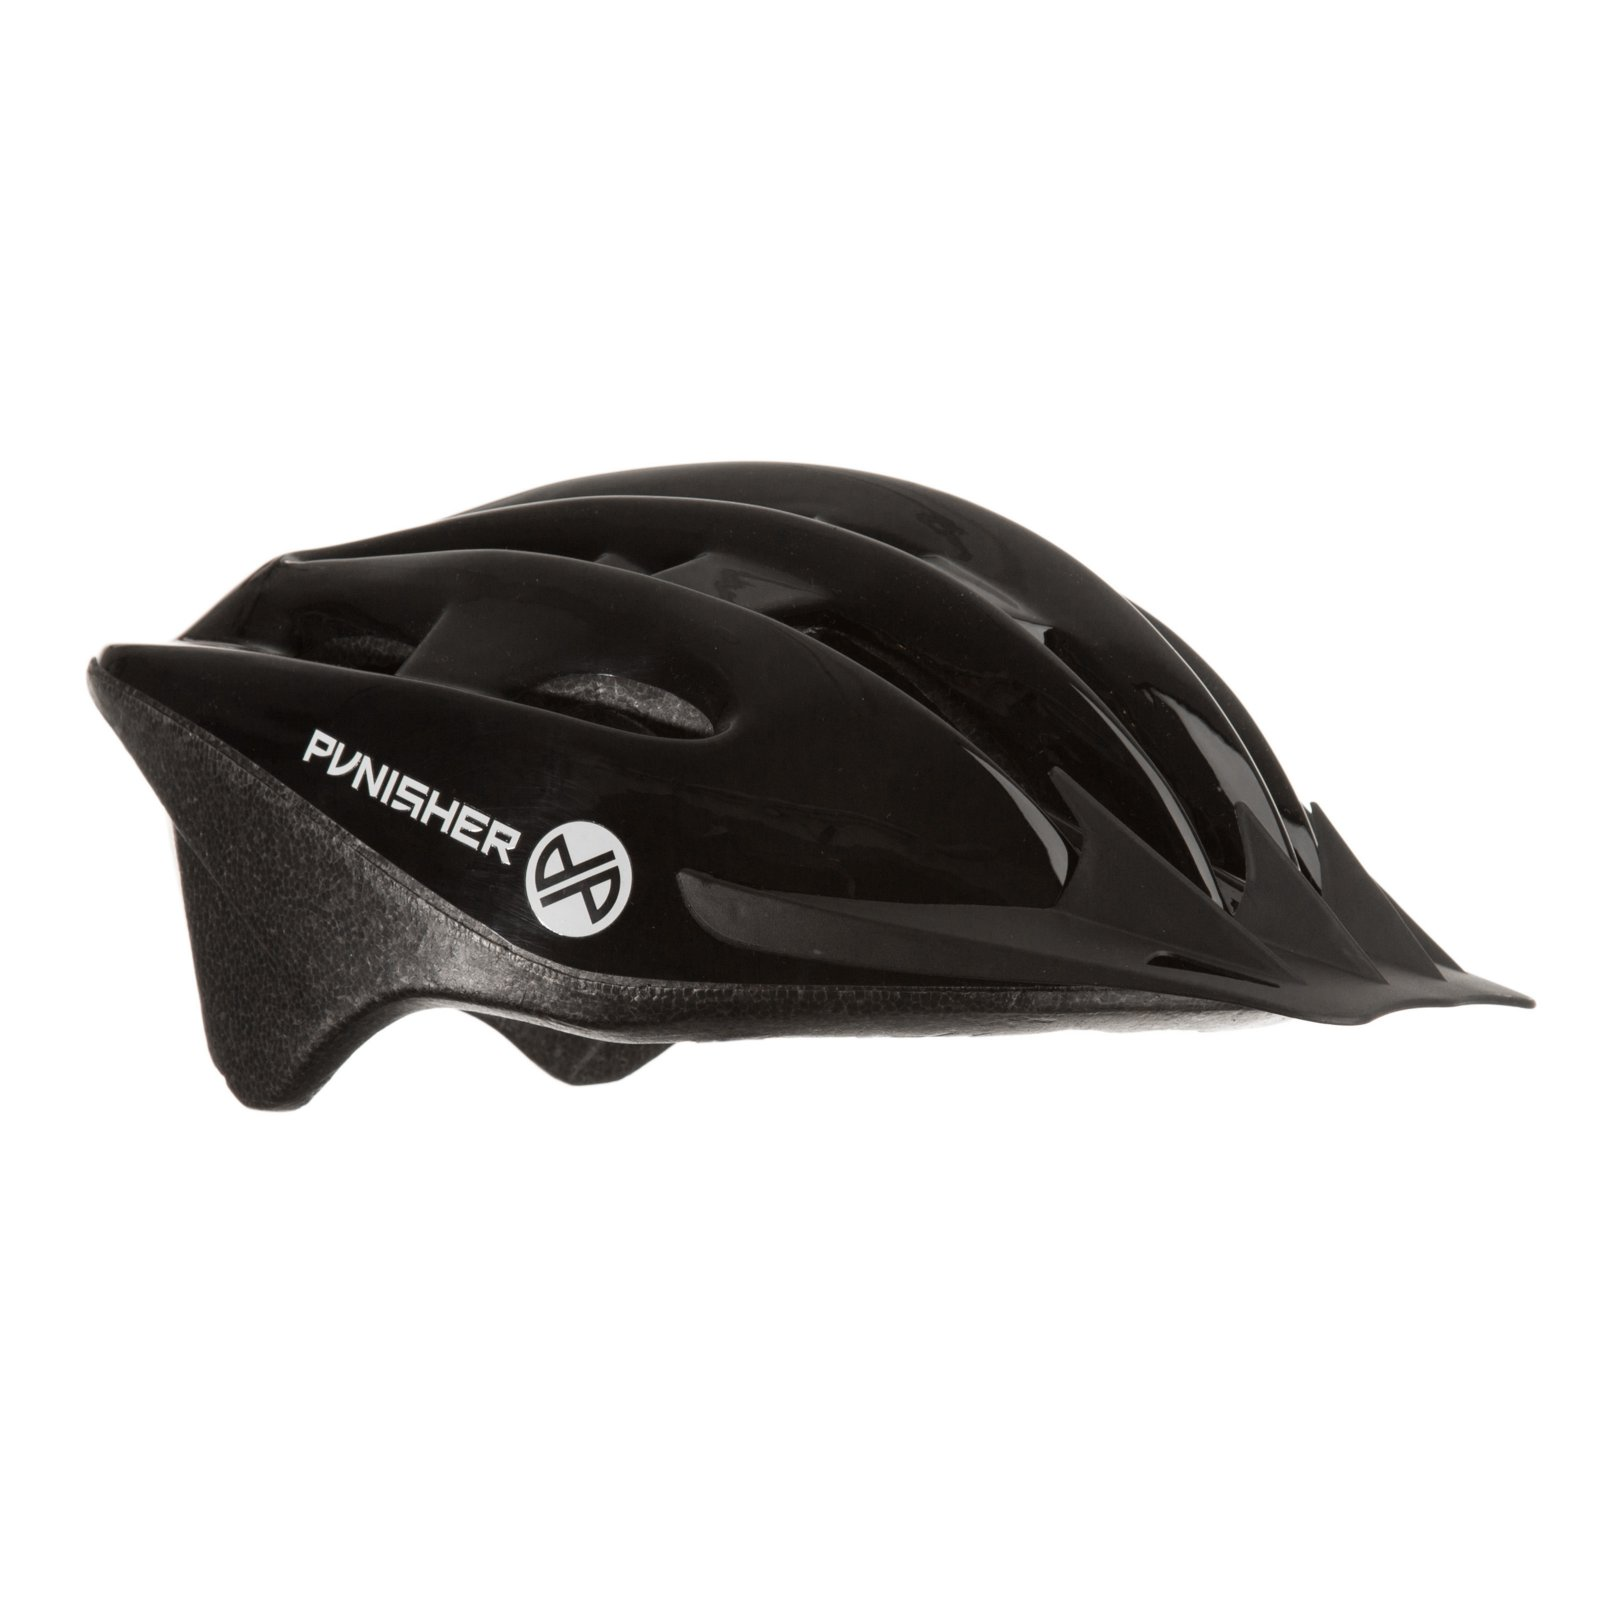 Punisher 18-Vent Adult Cycling Helmet with Imitation In-Mold, Black, Ages 12+ by Punisher Skateboards